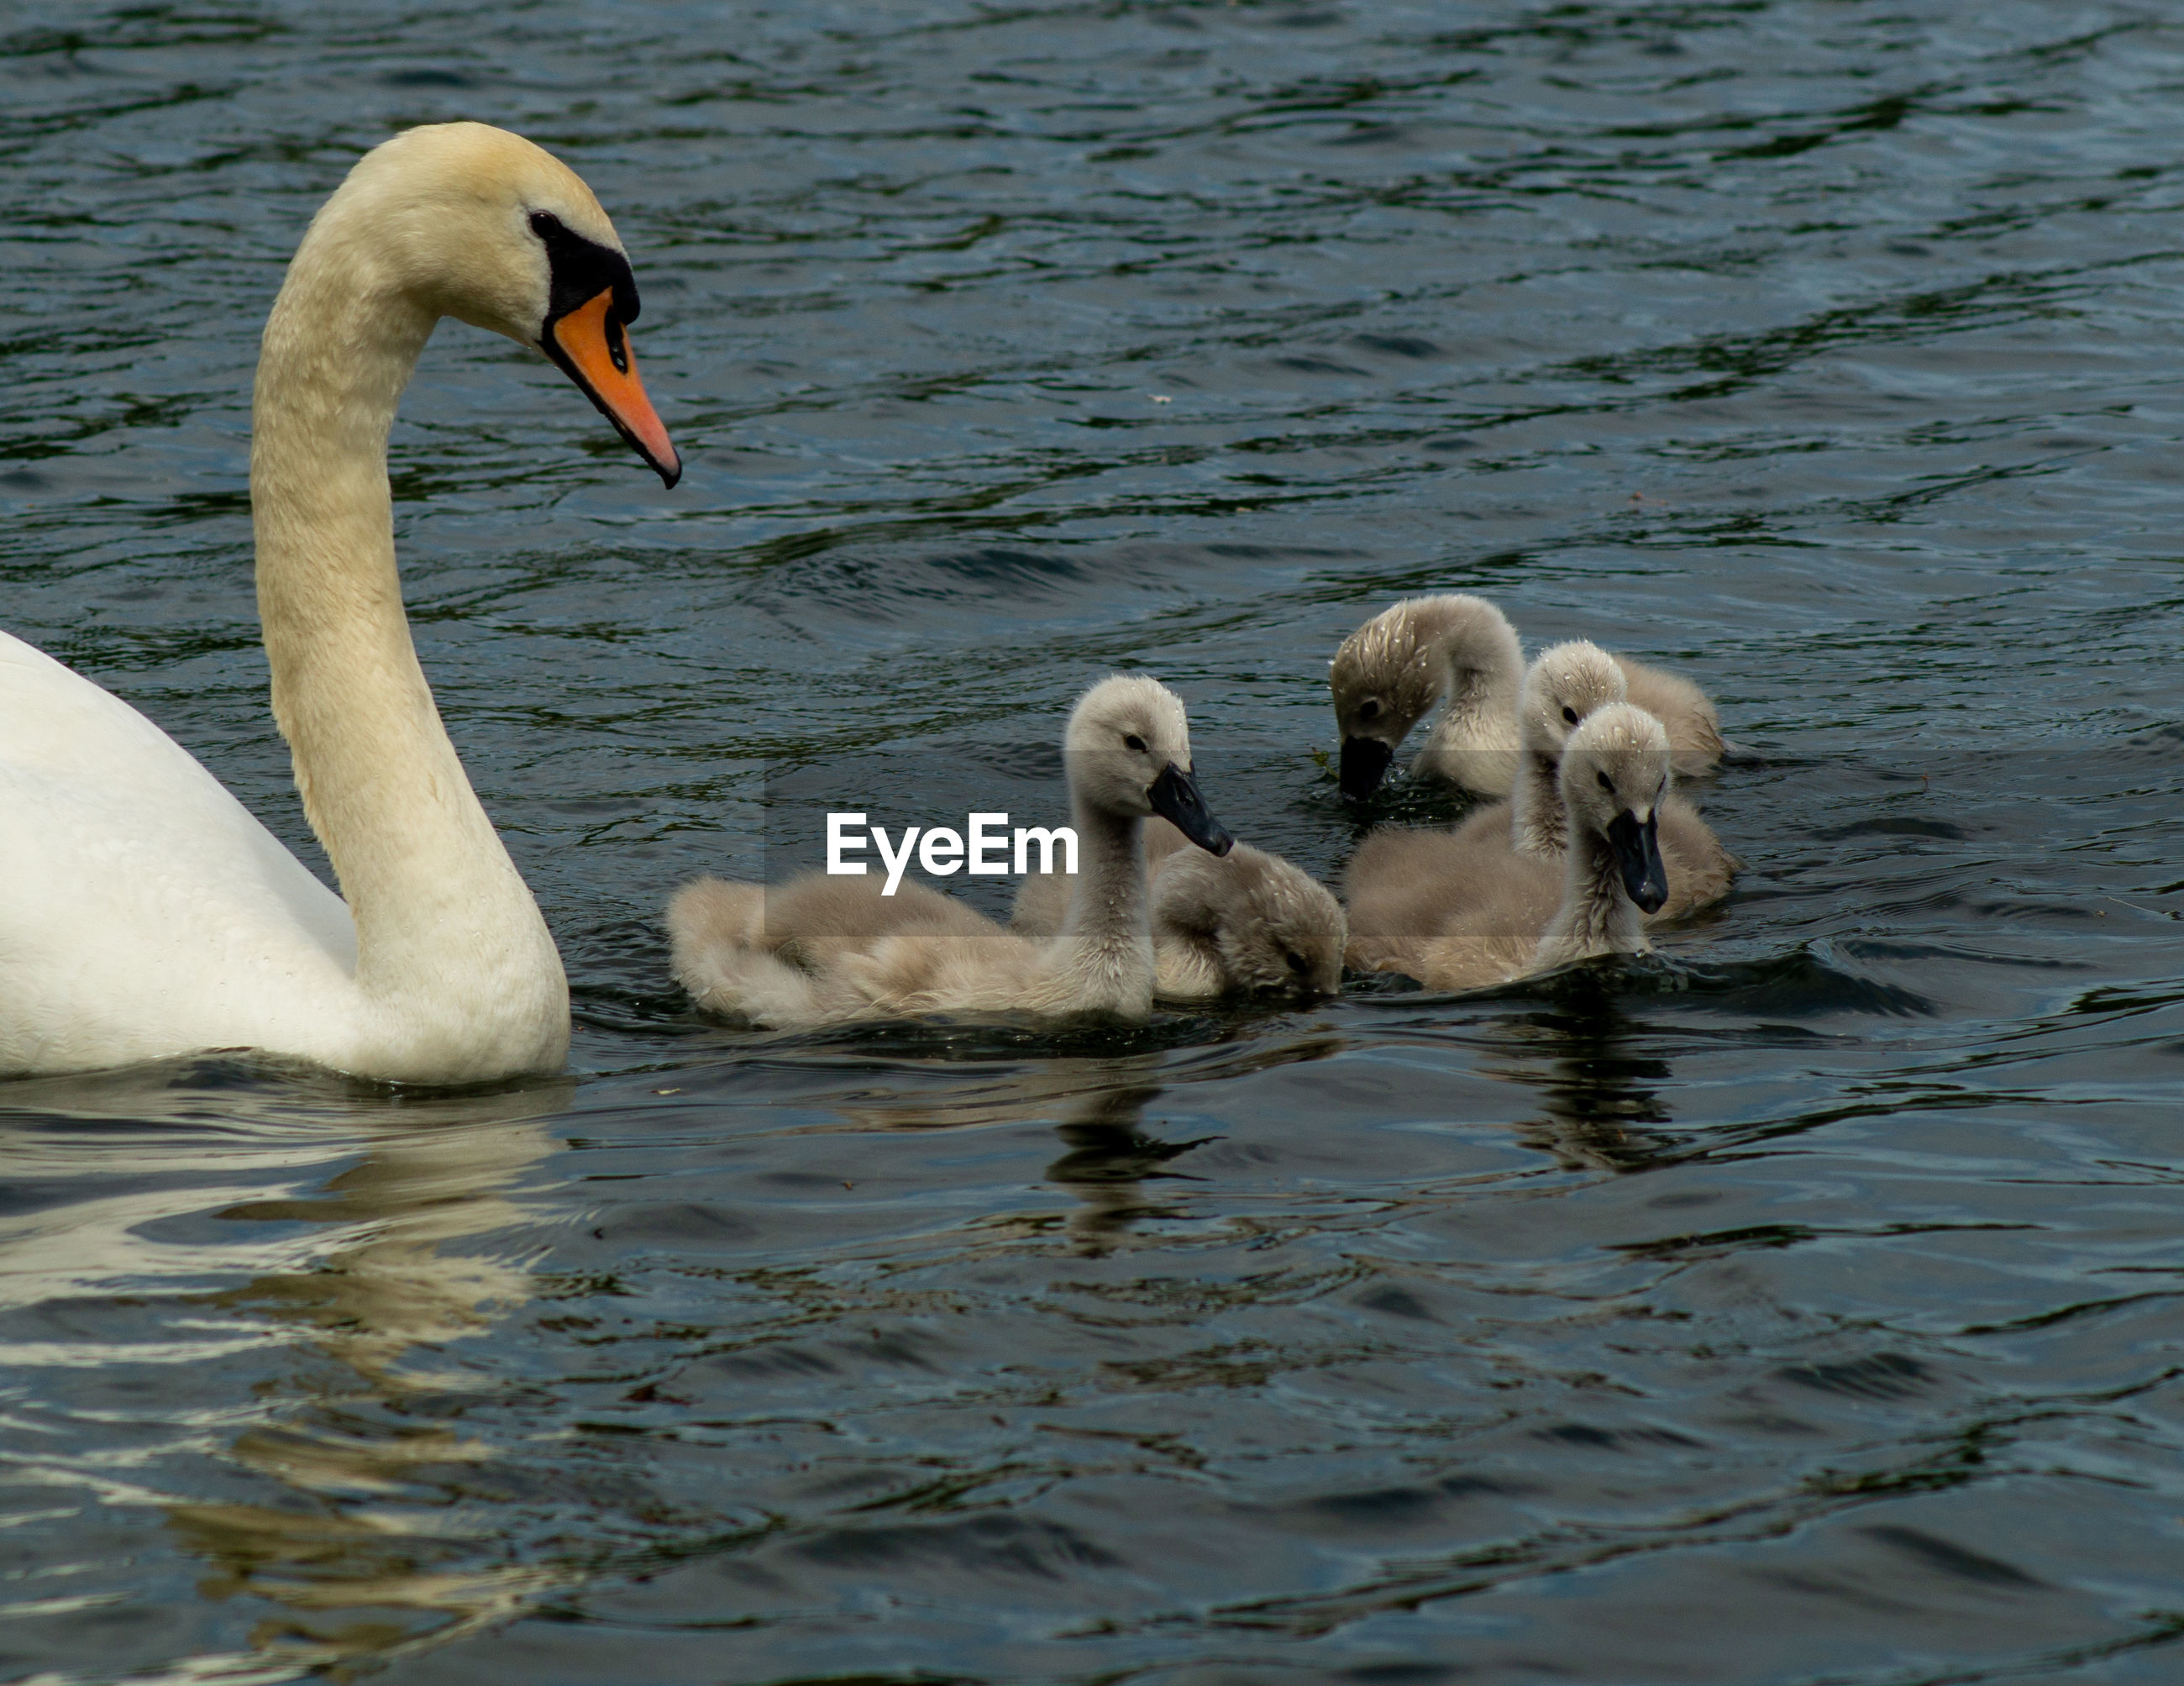 High angle view of large mute swan swans  cygnets swimming in lake with reflection